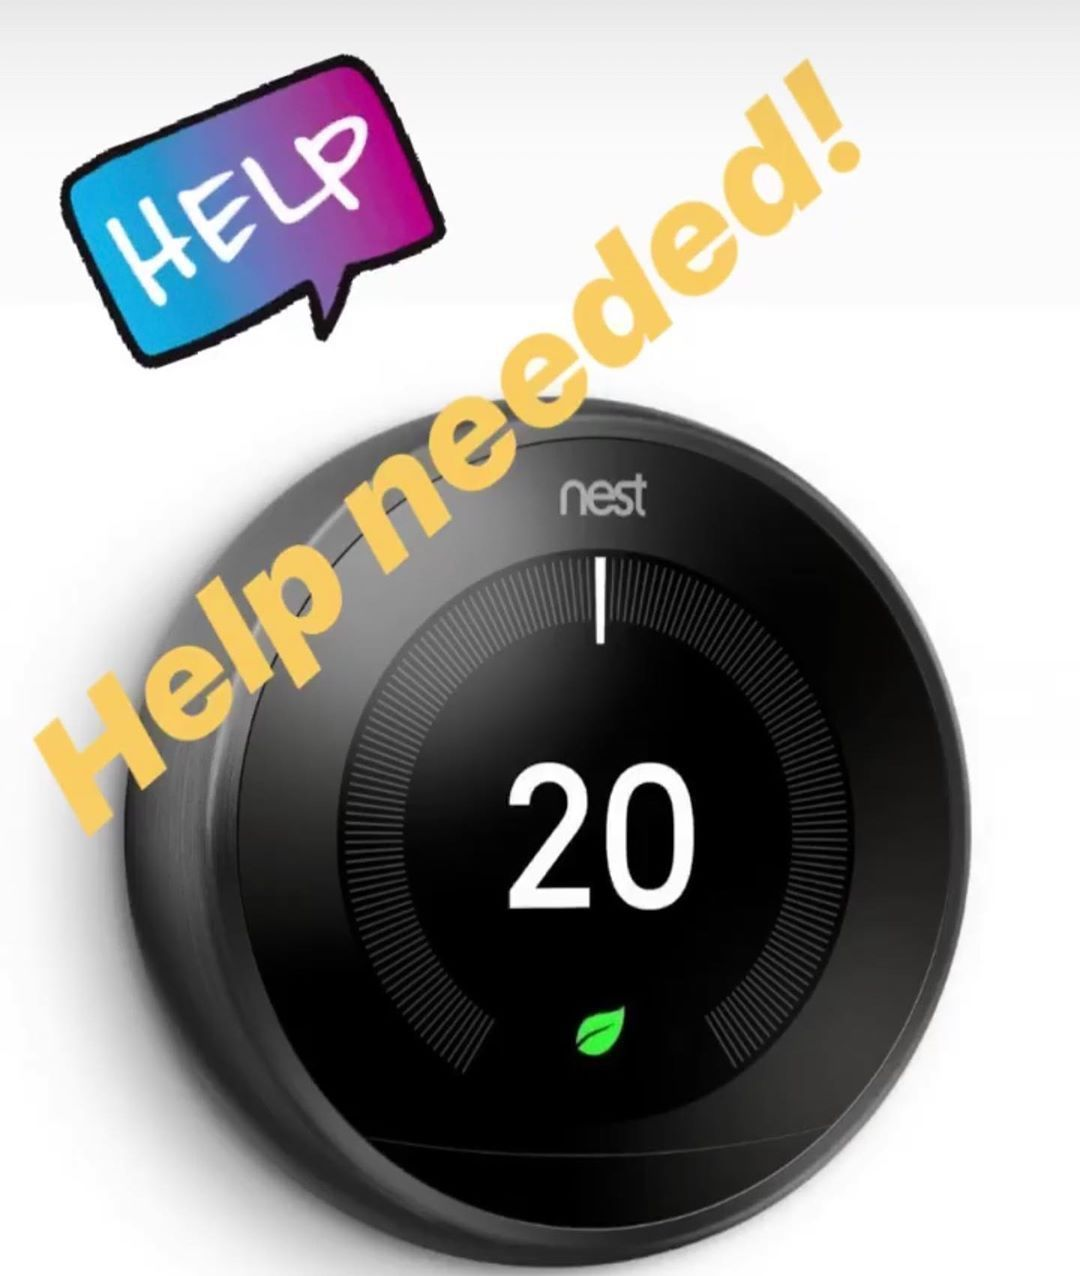 Has anyone had a Nest Thermostat fitted in a Persimmon Hatfield house? If so where and do you have any pictures you could show me? My current thermostat is located to the side of the cloakroom WC light switch, I worry it's too low and the Nest should be fitted above the light switch?!! #persimmon #persimmonhatfield #persimmonshatfield #hatfield #ilovemypersimmonhome #persimmonshomes #persimmons #newbuild #interiordesign #taylorwimpey #bloor #bloorhomes #homedecor #homedesign #bedroomdecor #bedro